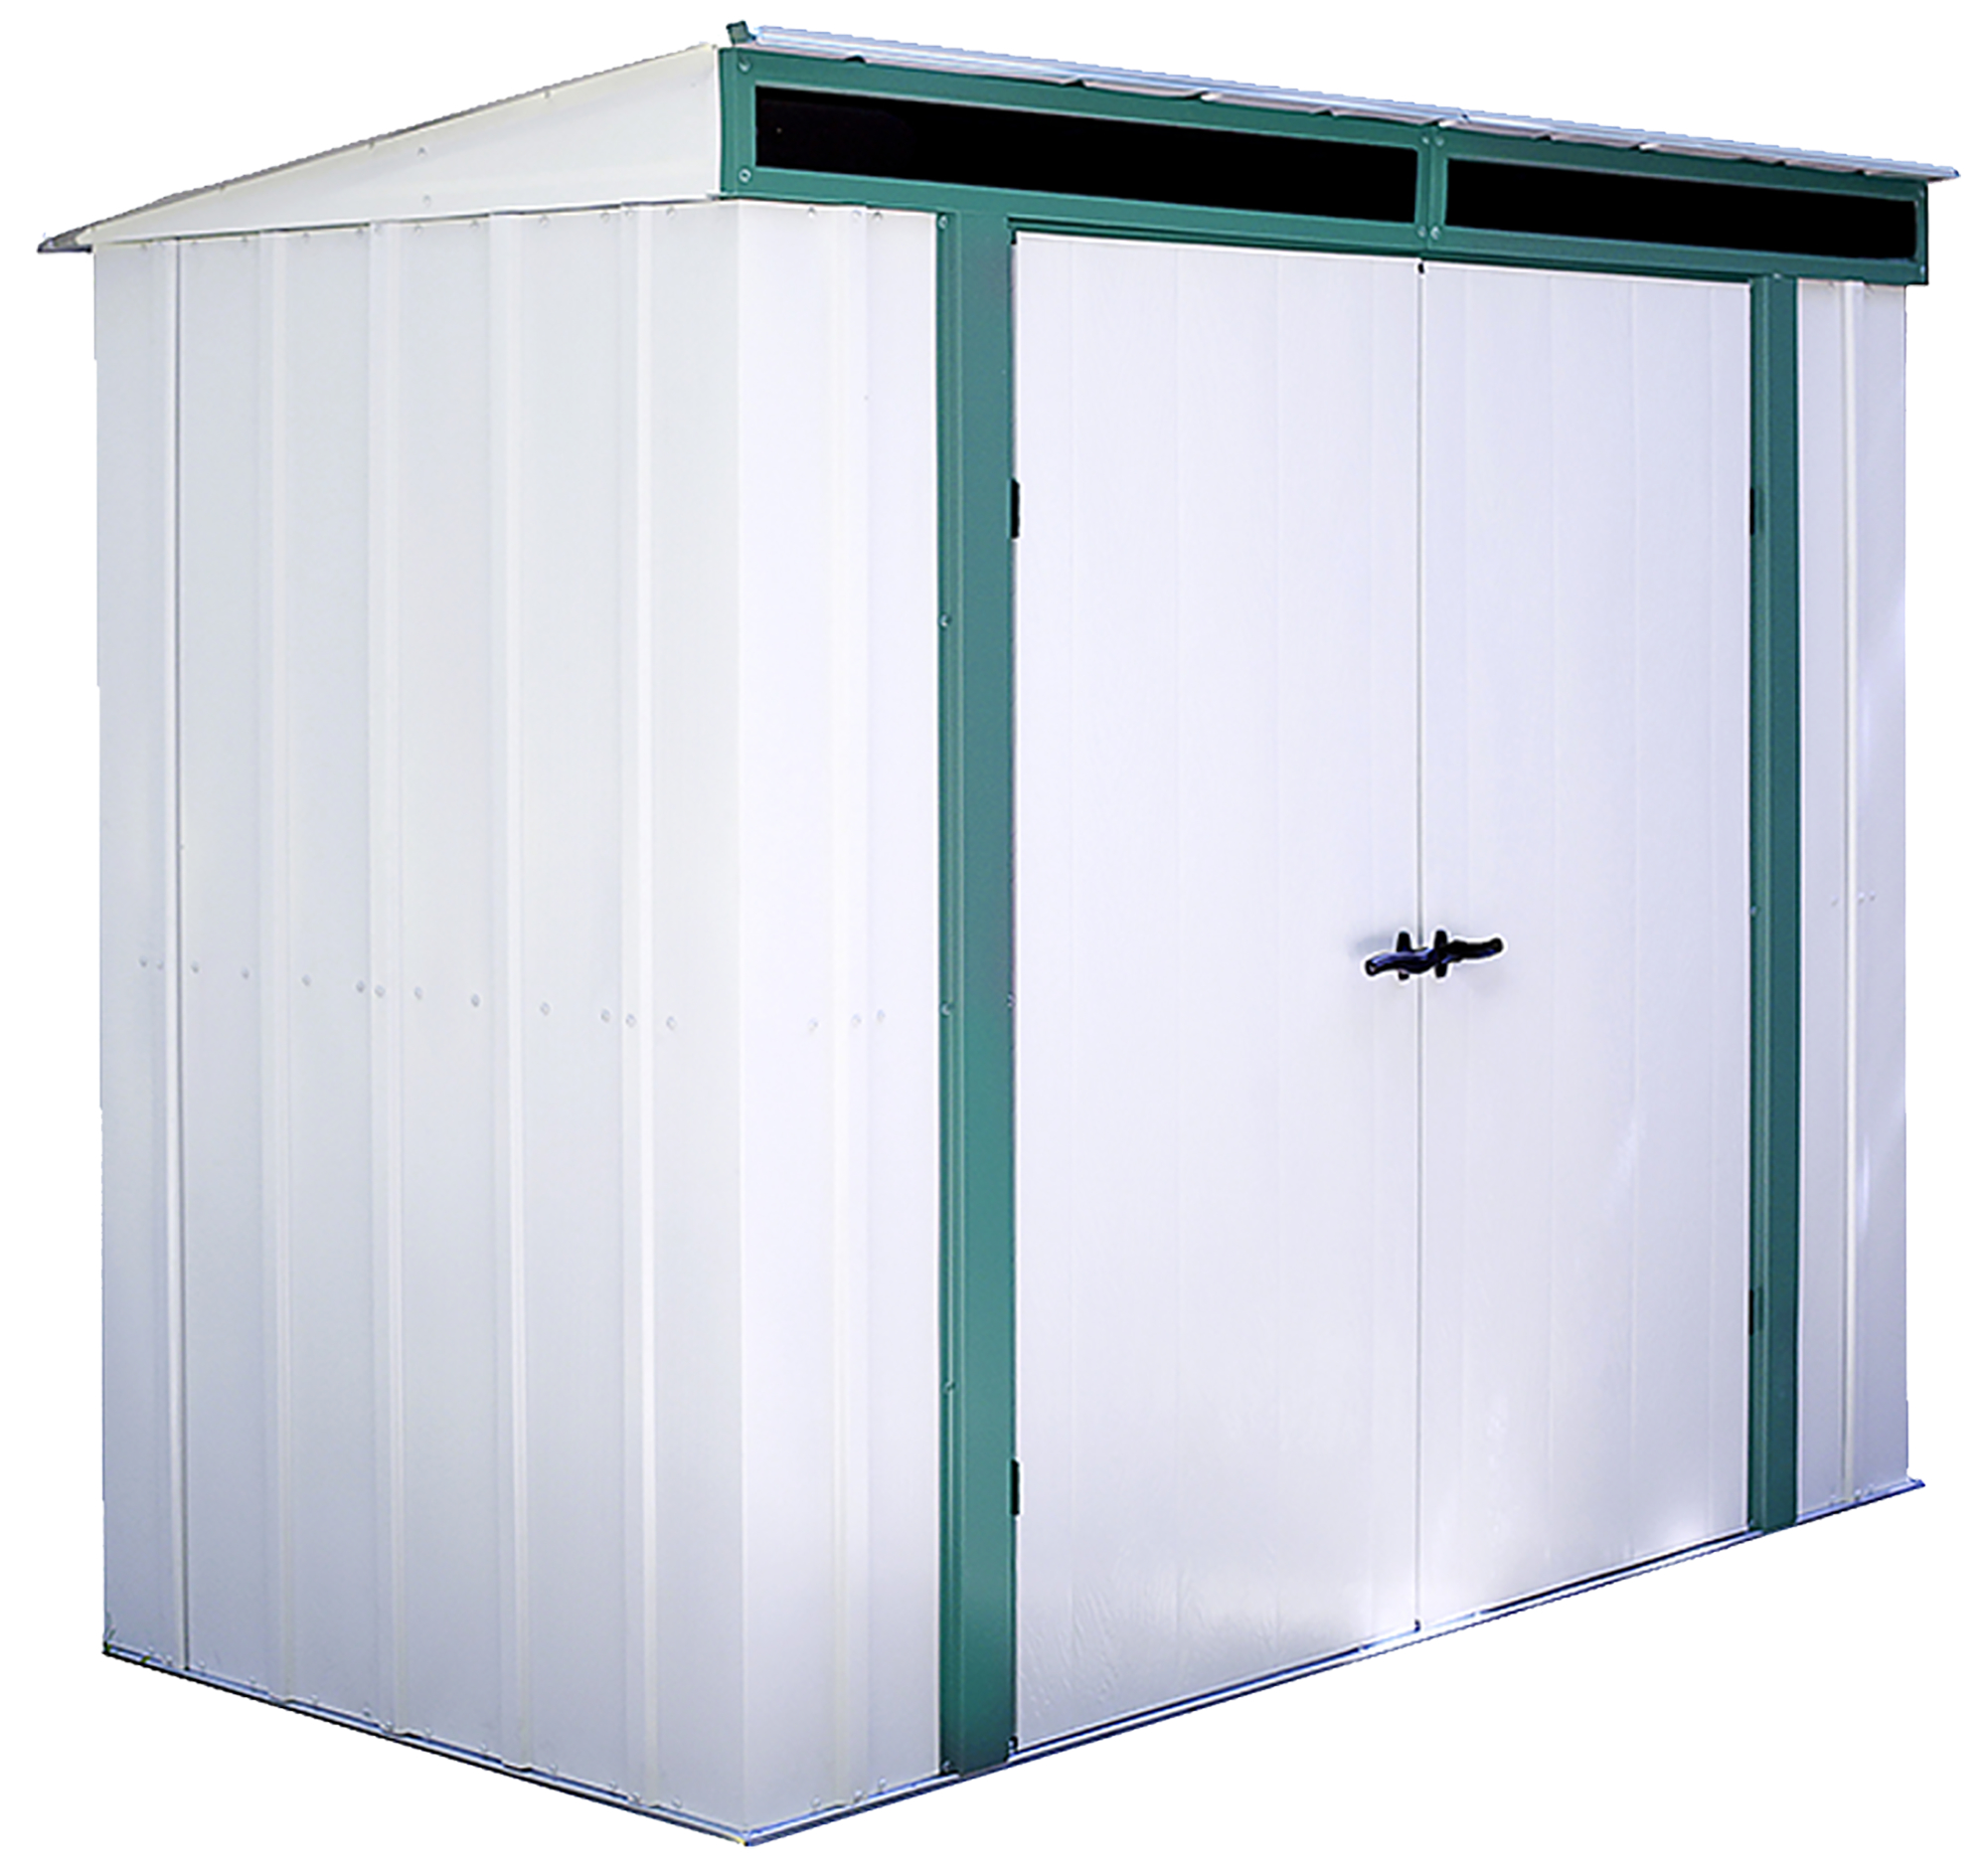 Steel Storage Sheds Euro Lite 8 X 4 Ft Steel Storage Shed Pent Roof Green Eggshell